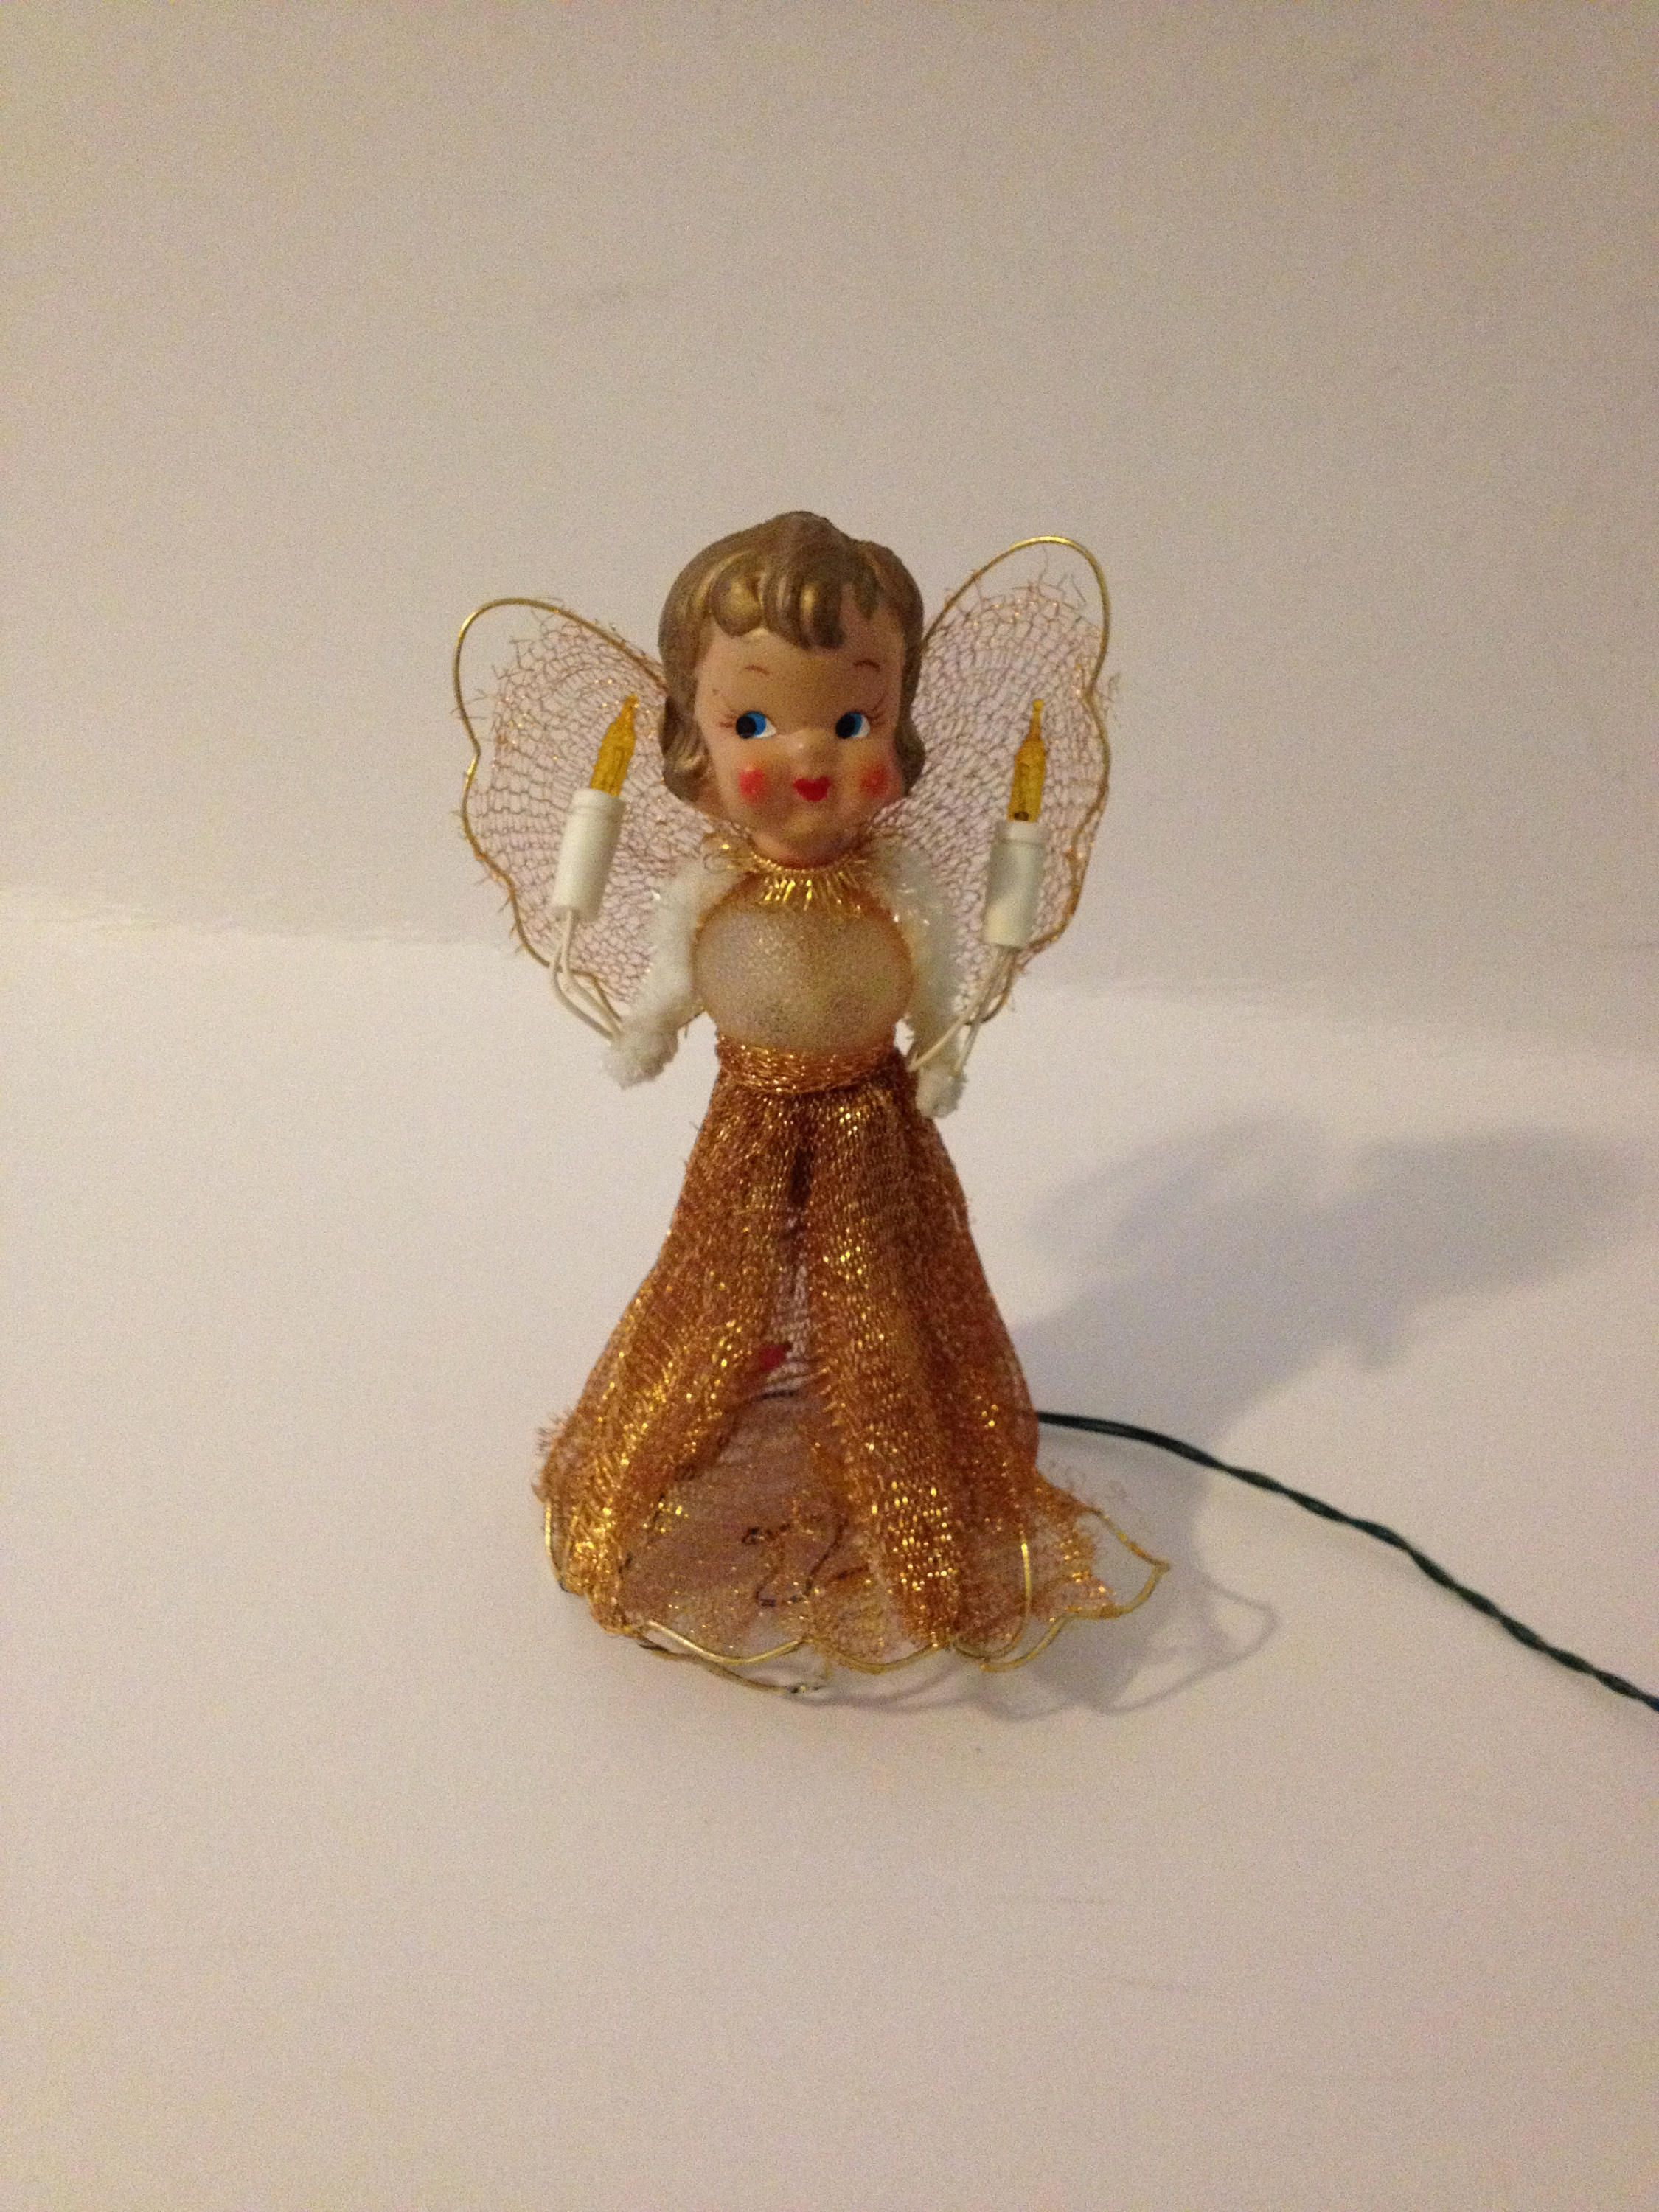 Vintage Antique 1950 S Gold Metallic Tulle Angel Lighted Etsy Christmas Tree Toppers Lighted Vintage Antiques Christmas Tree Toppers